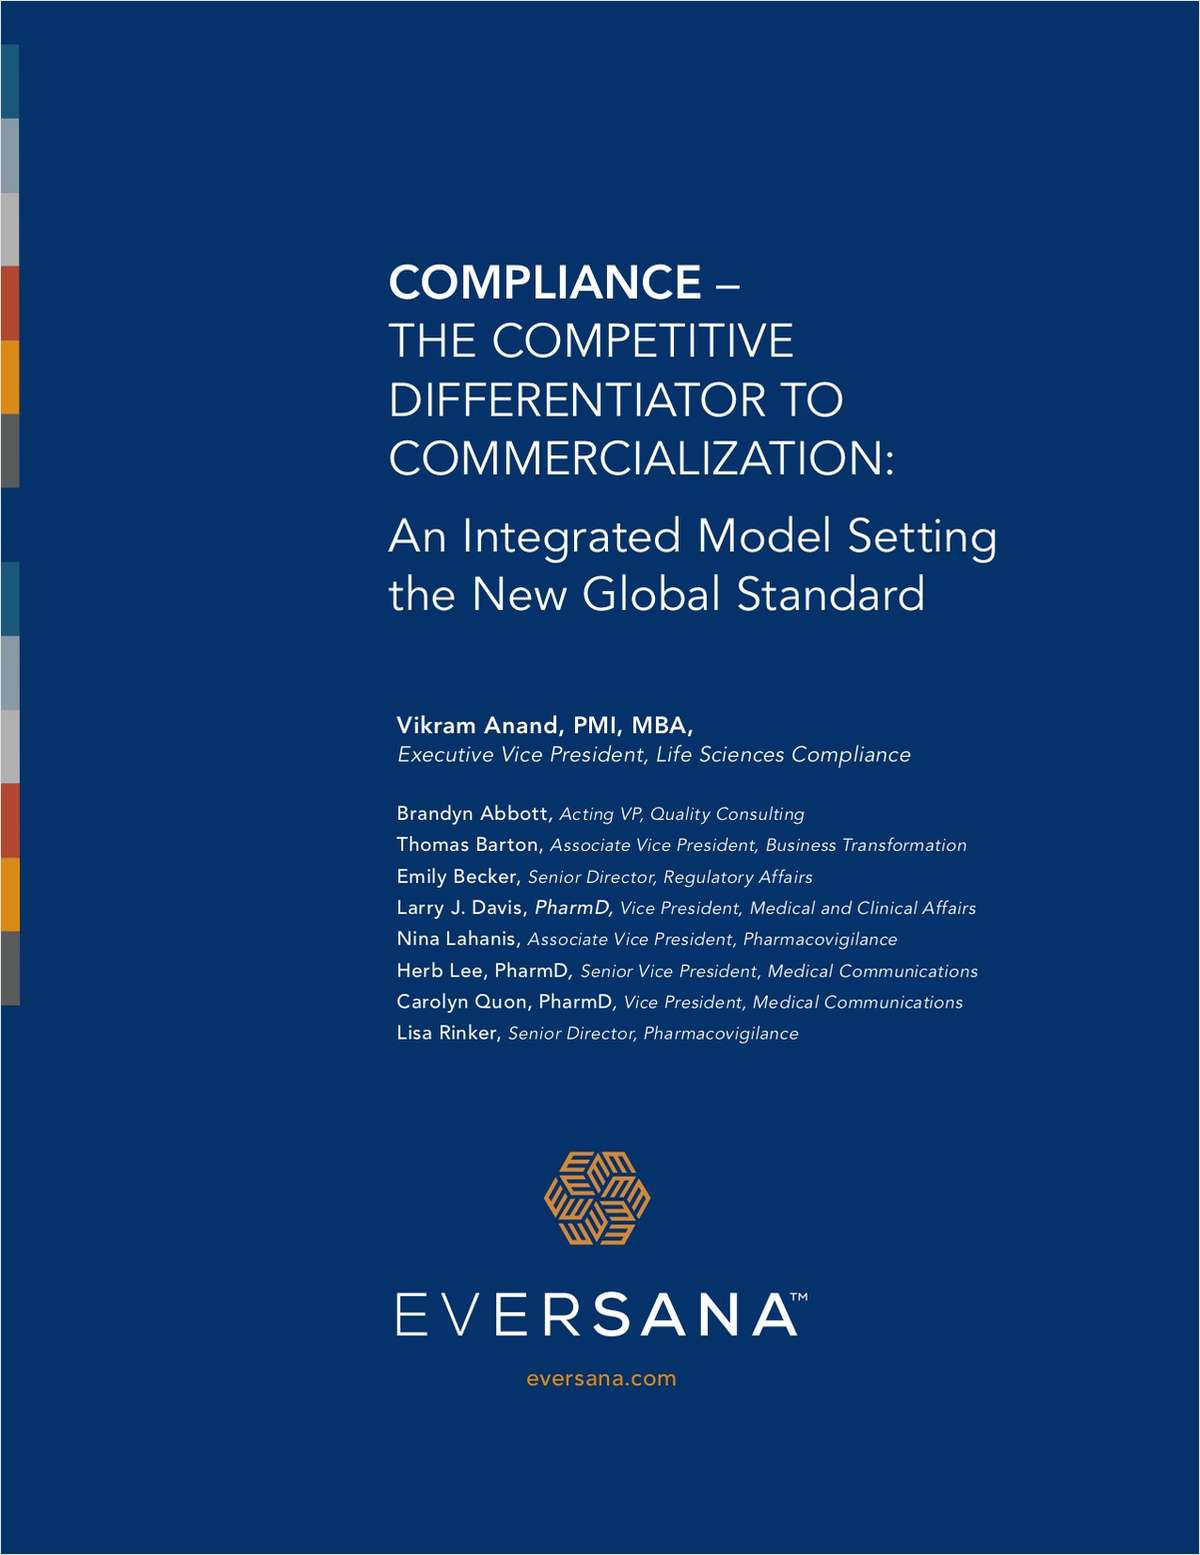 COMPLIANCE --THE COMPETITIVE DIFFERENTIATOR TO COMMERCIALIZATION: An Integrated Model Setting the New Global Standard